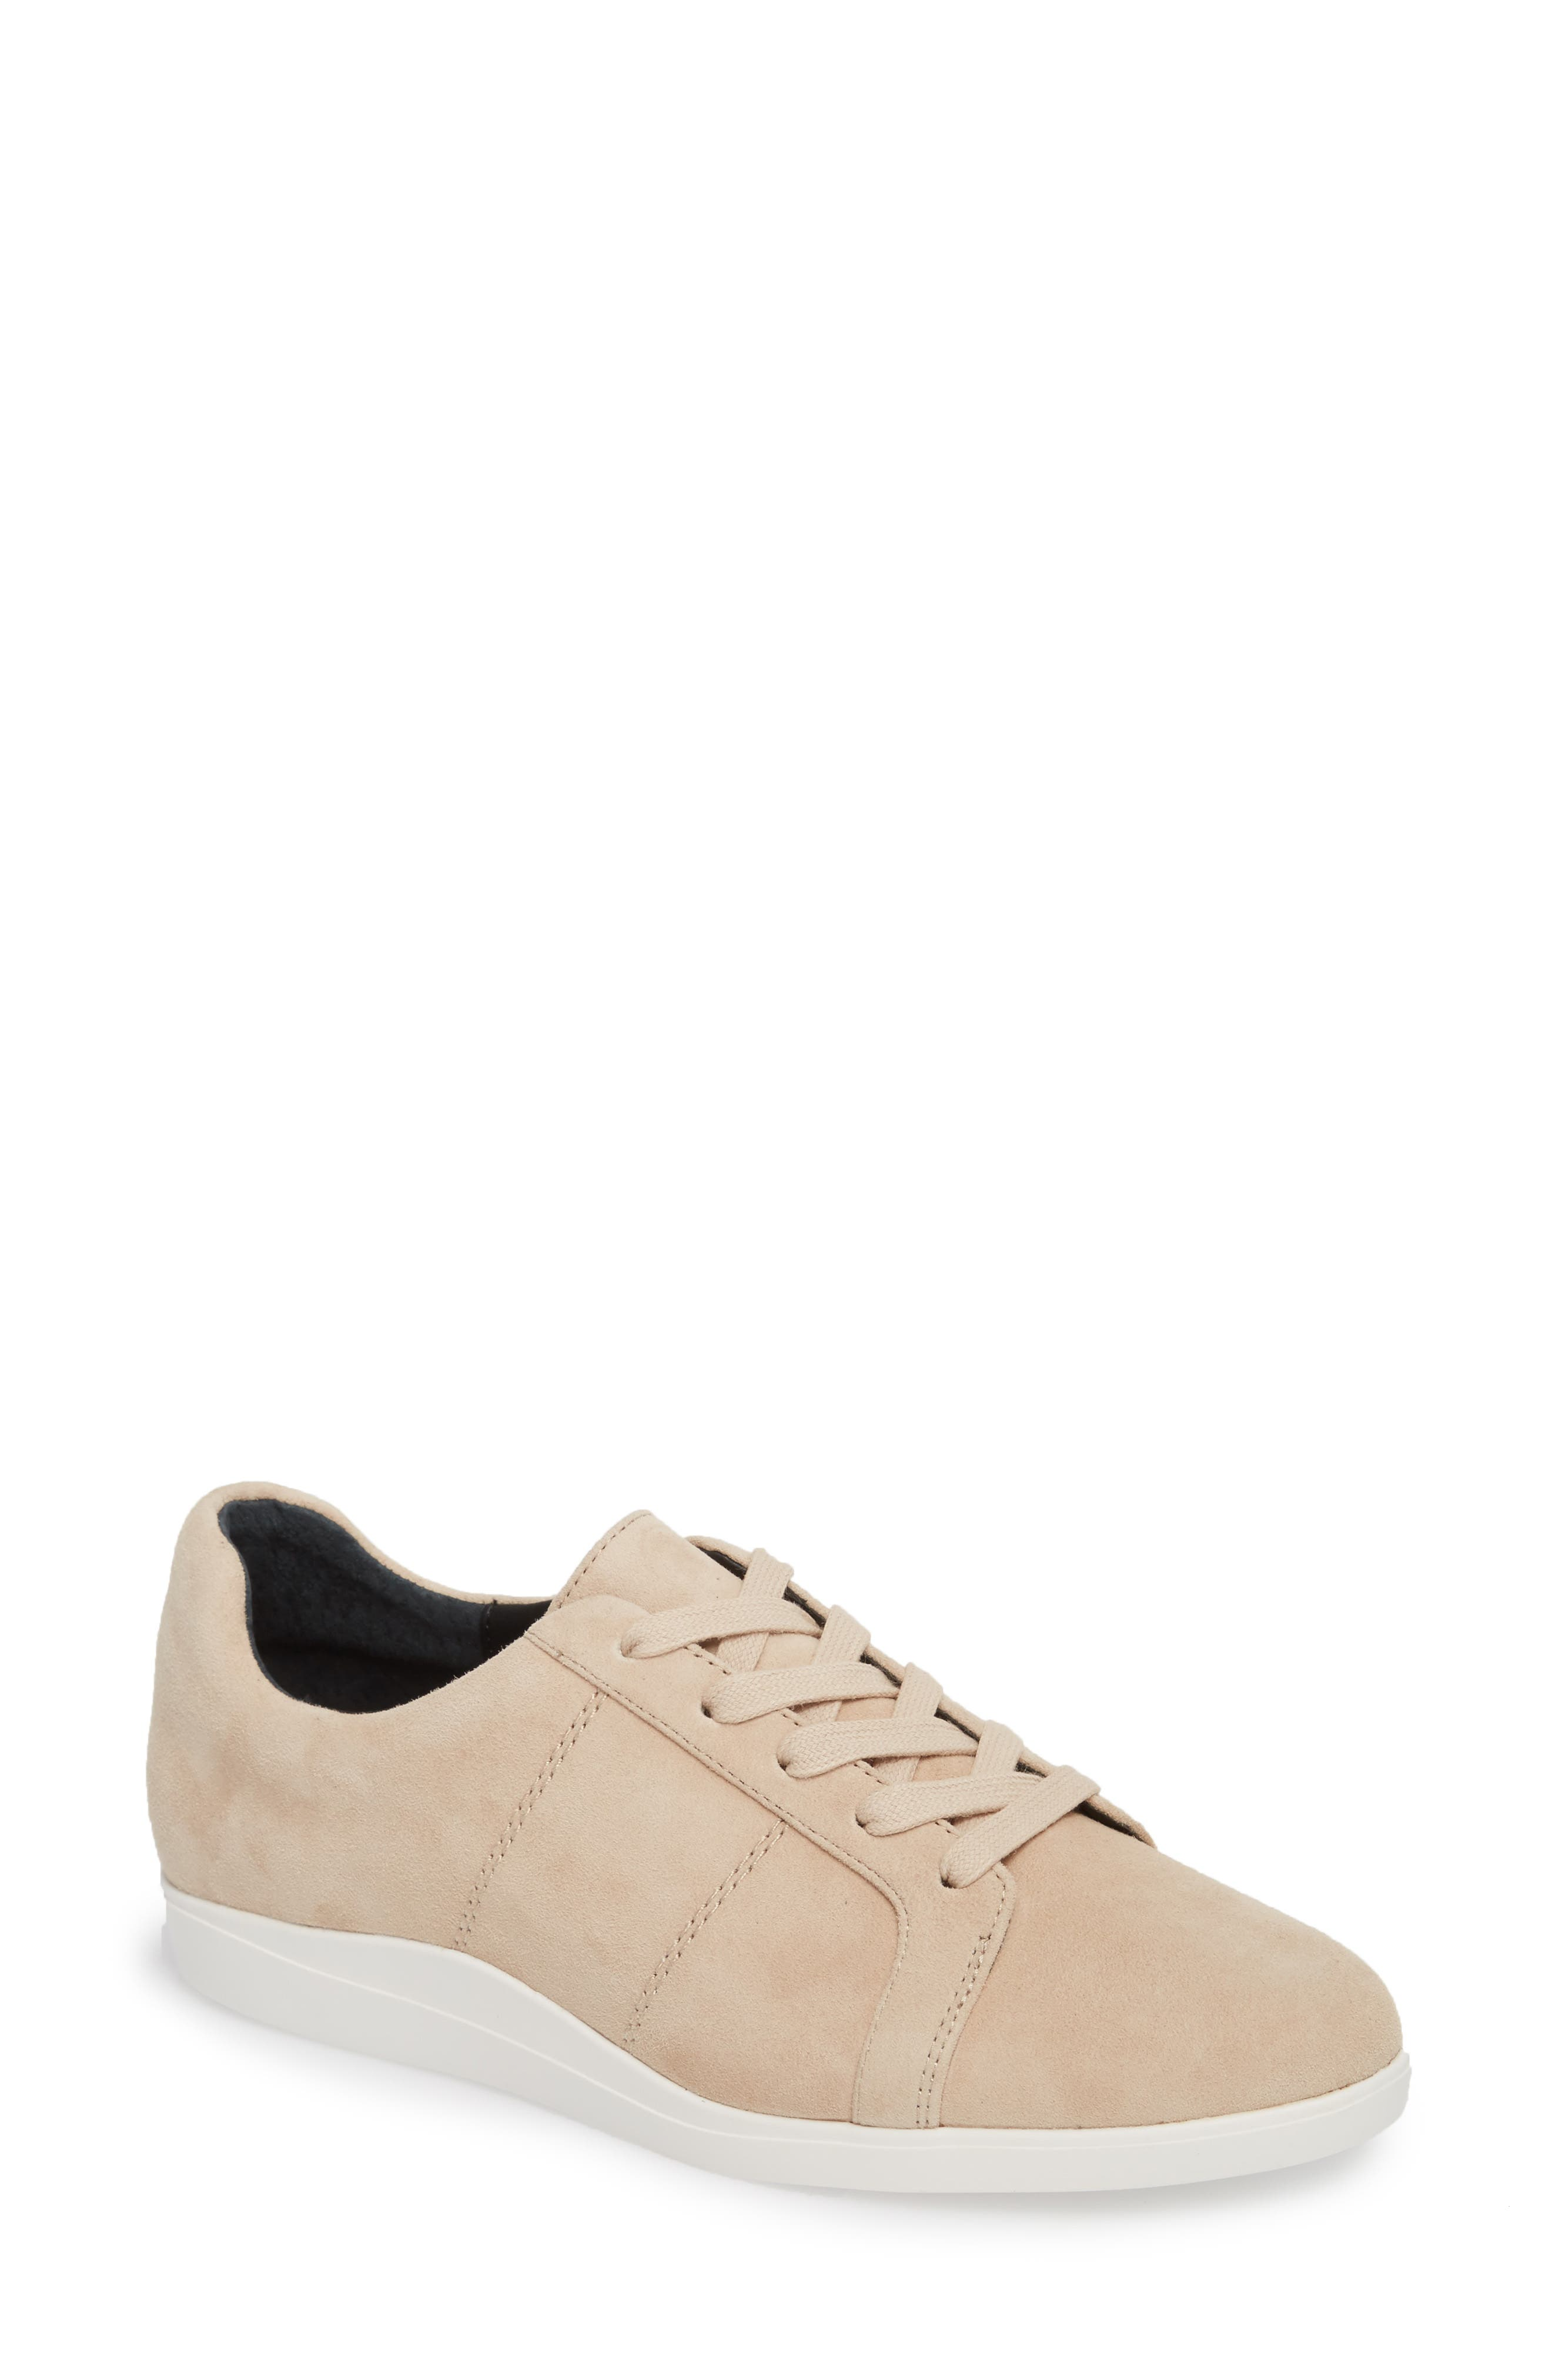 Sharleen Sneaker,                             Main thumbnail 1, color,                             Sandstorm Leather